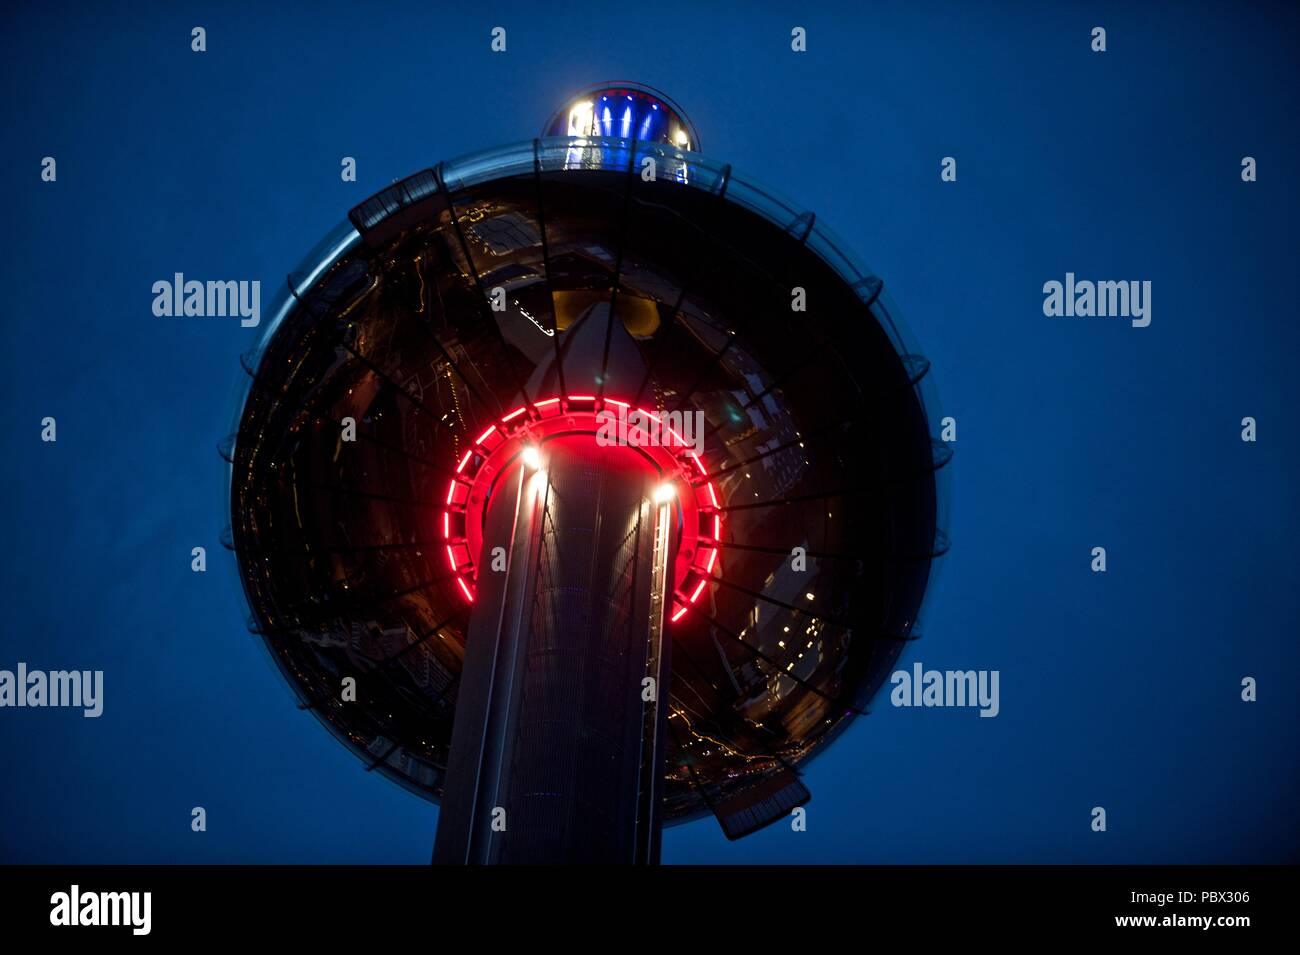 British Airways i360, Brighton seafront, summer 2018 - Stock Image